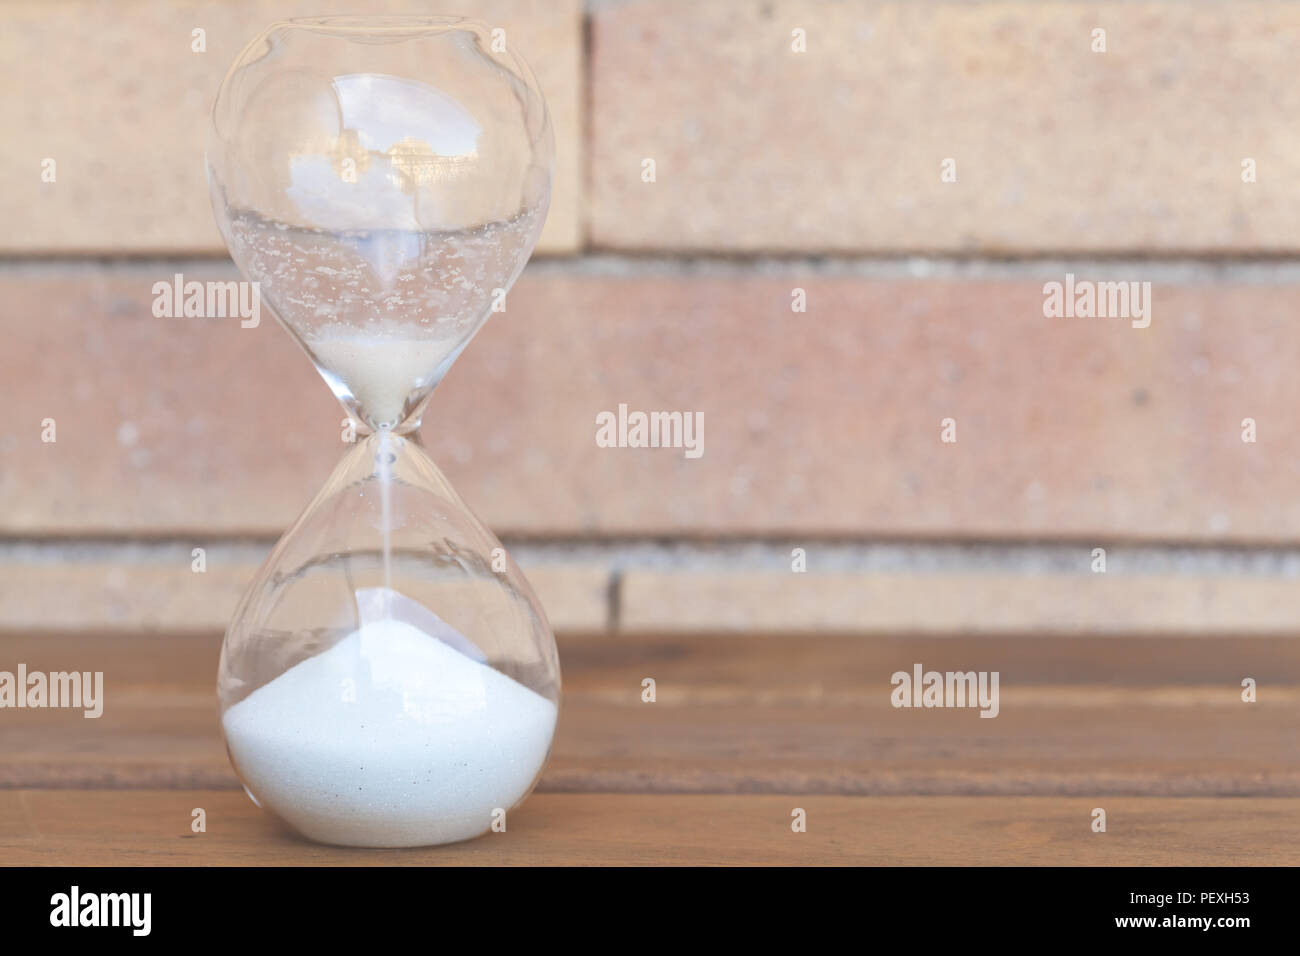 Hourglass - time passing by concept Stock Photo